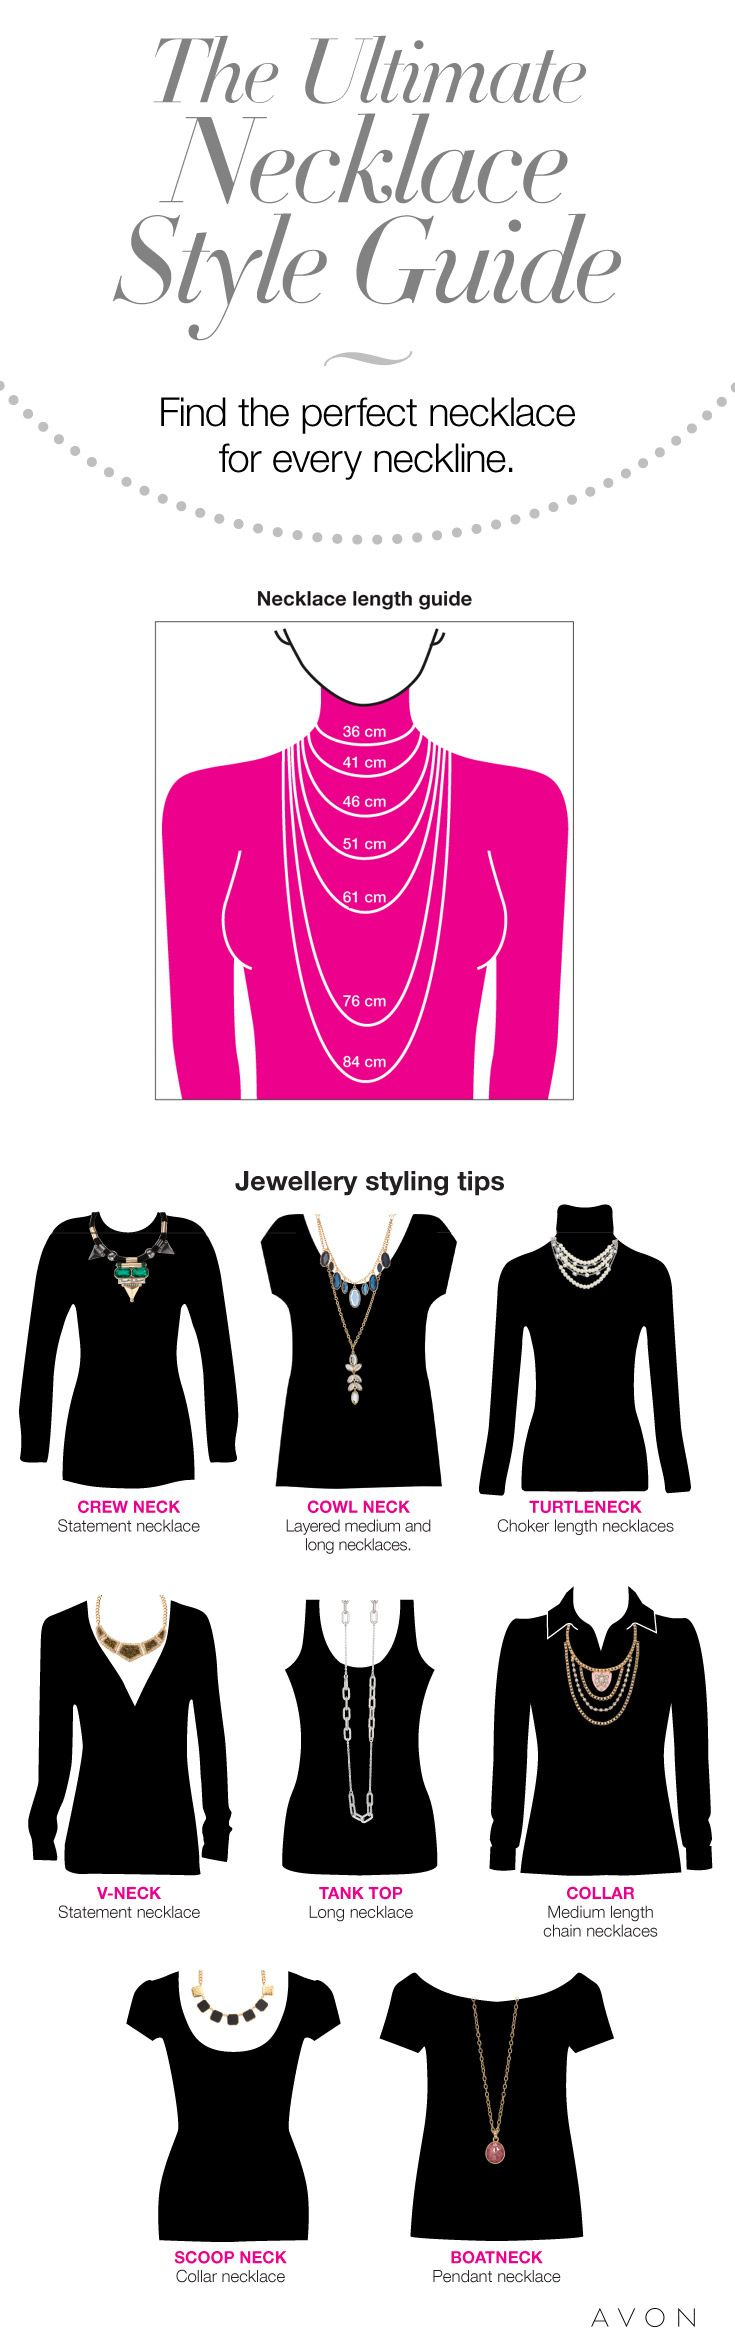 The indispensable necklace styling guide! Find out how to accessorize any neckline. #AvonCanada